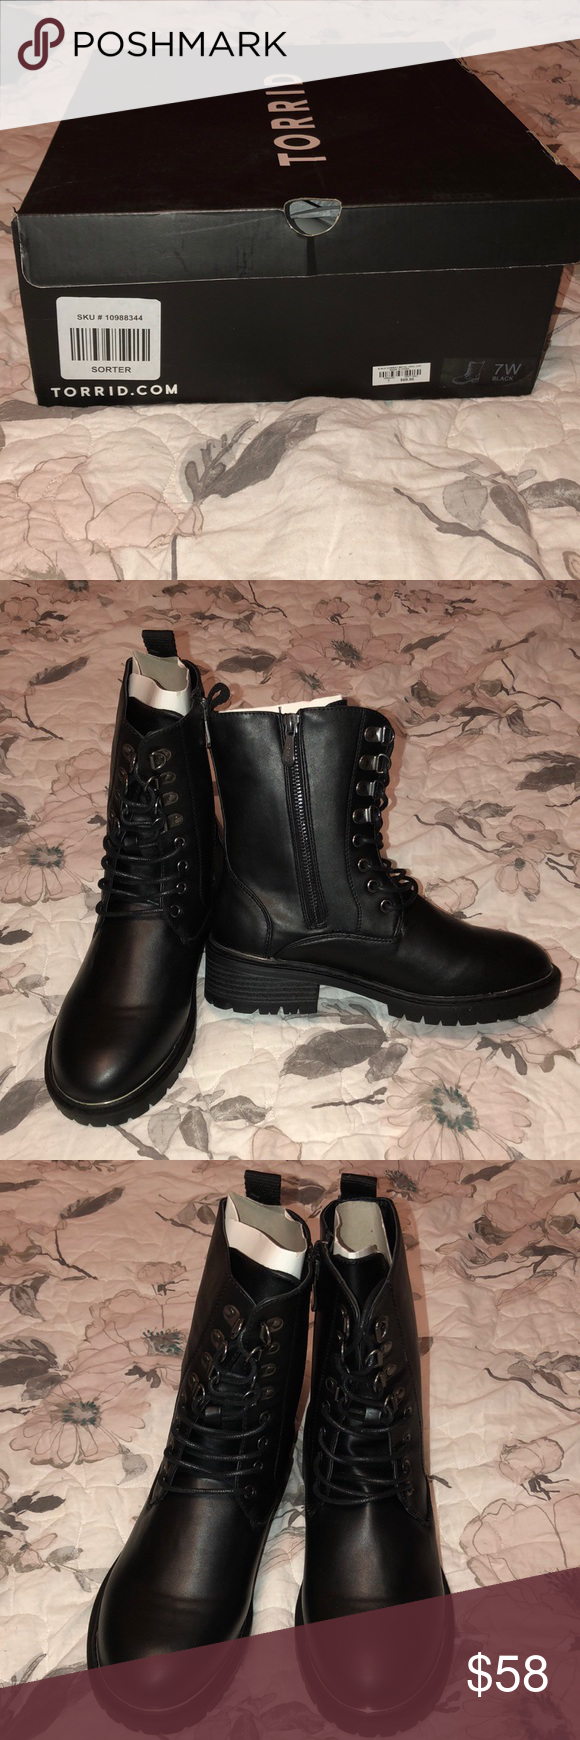 NWB Torrid Combat Boots With Silver Trim New with box Torrid black combat boots. Size 7(labeled 7W but runs small, closer to standard size 7 fit). Has side zipper, lace up front, and silver detail on toe and heel of shoe. Super cool, I love these so much I ended up buying them for myself twice! My fave boots to wear for fall/winter. Never worn, only out of box for pics.